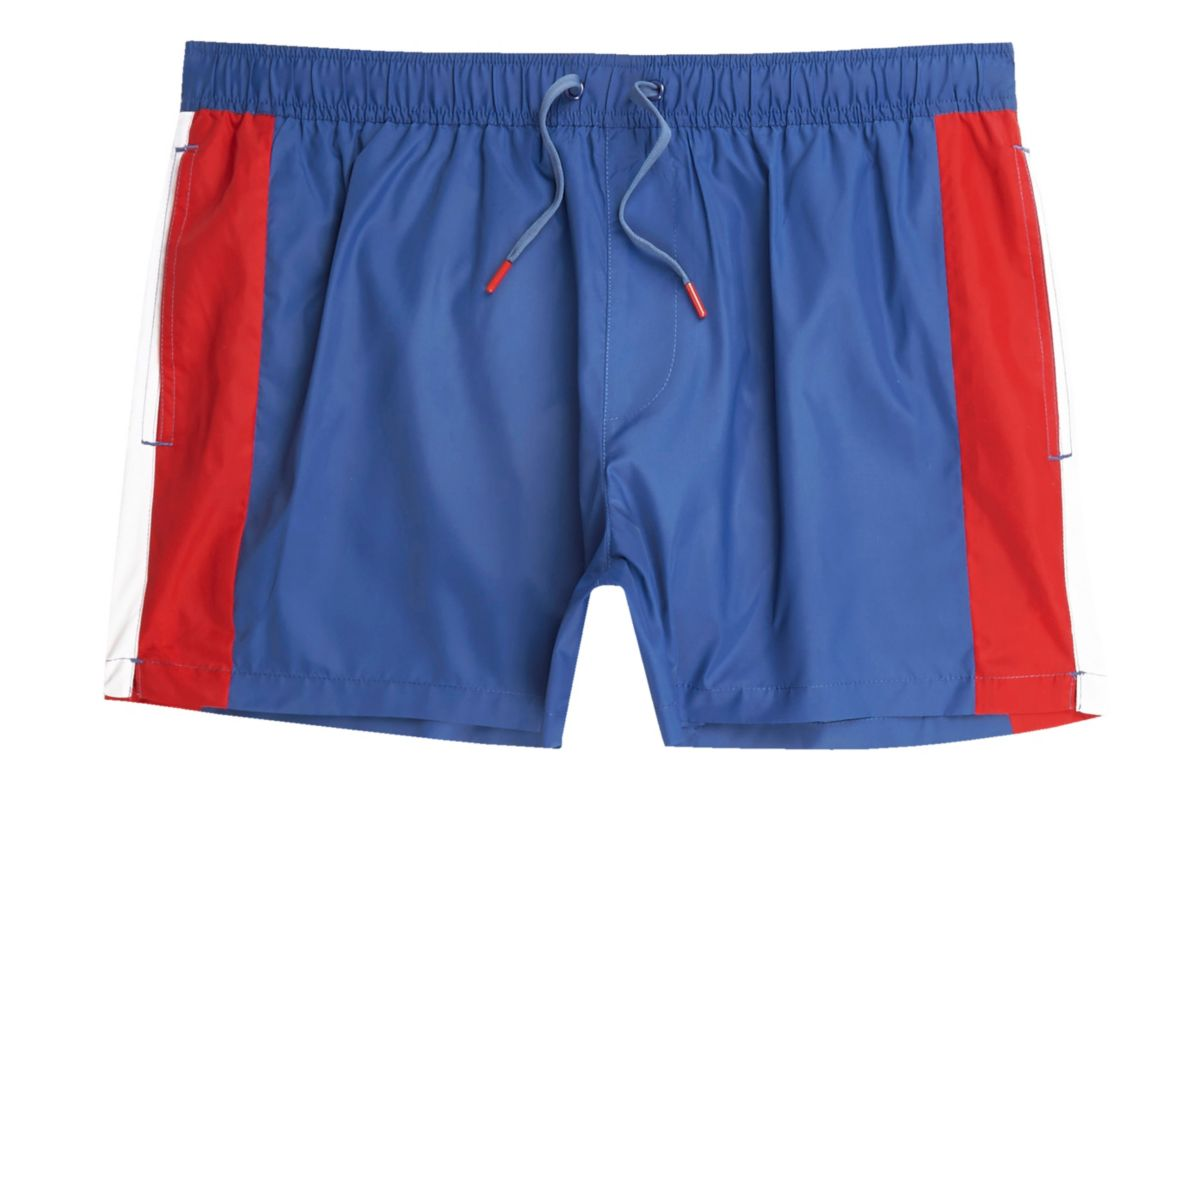 Blue and red block swim shorts